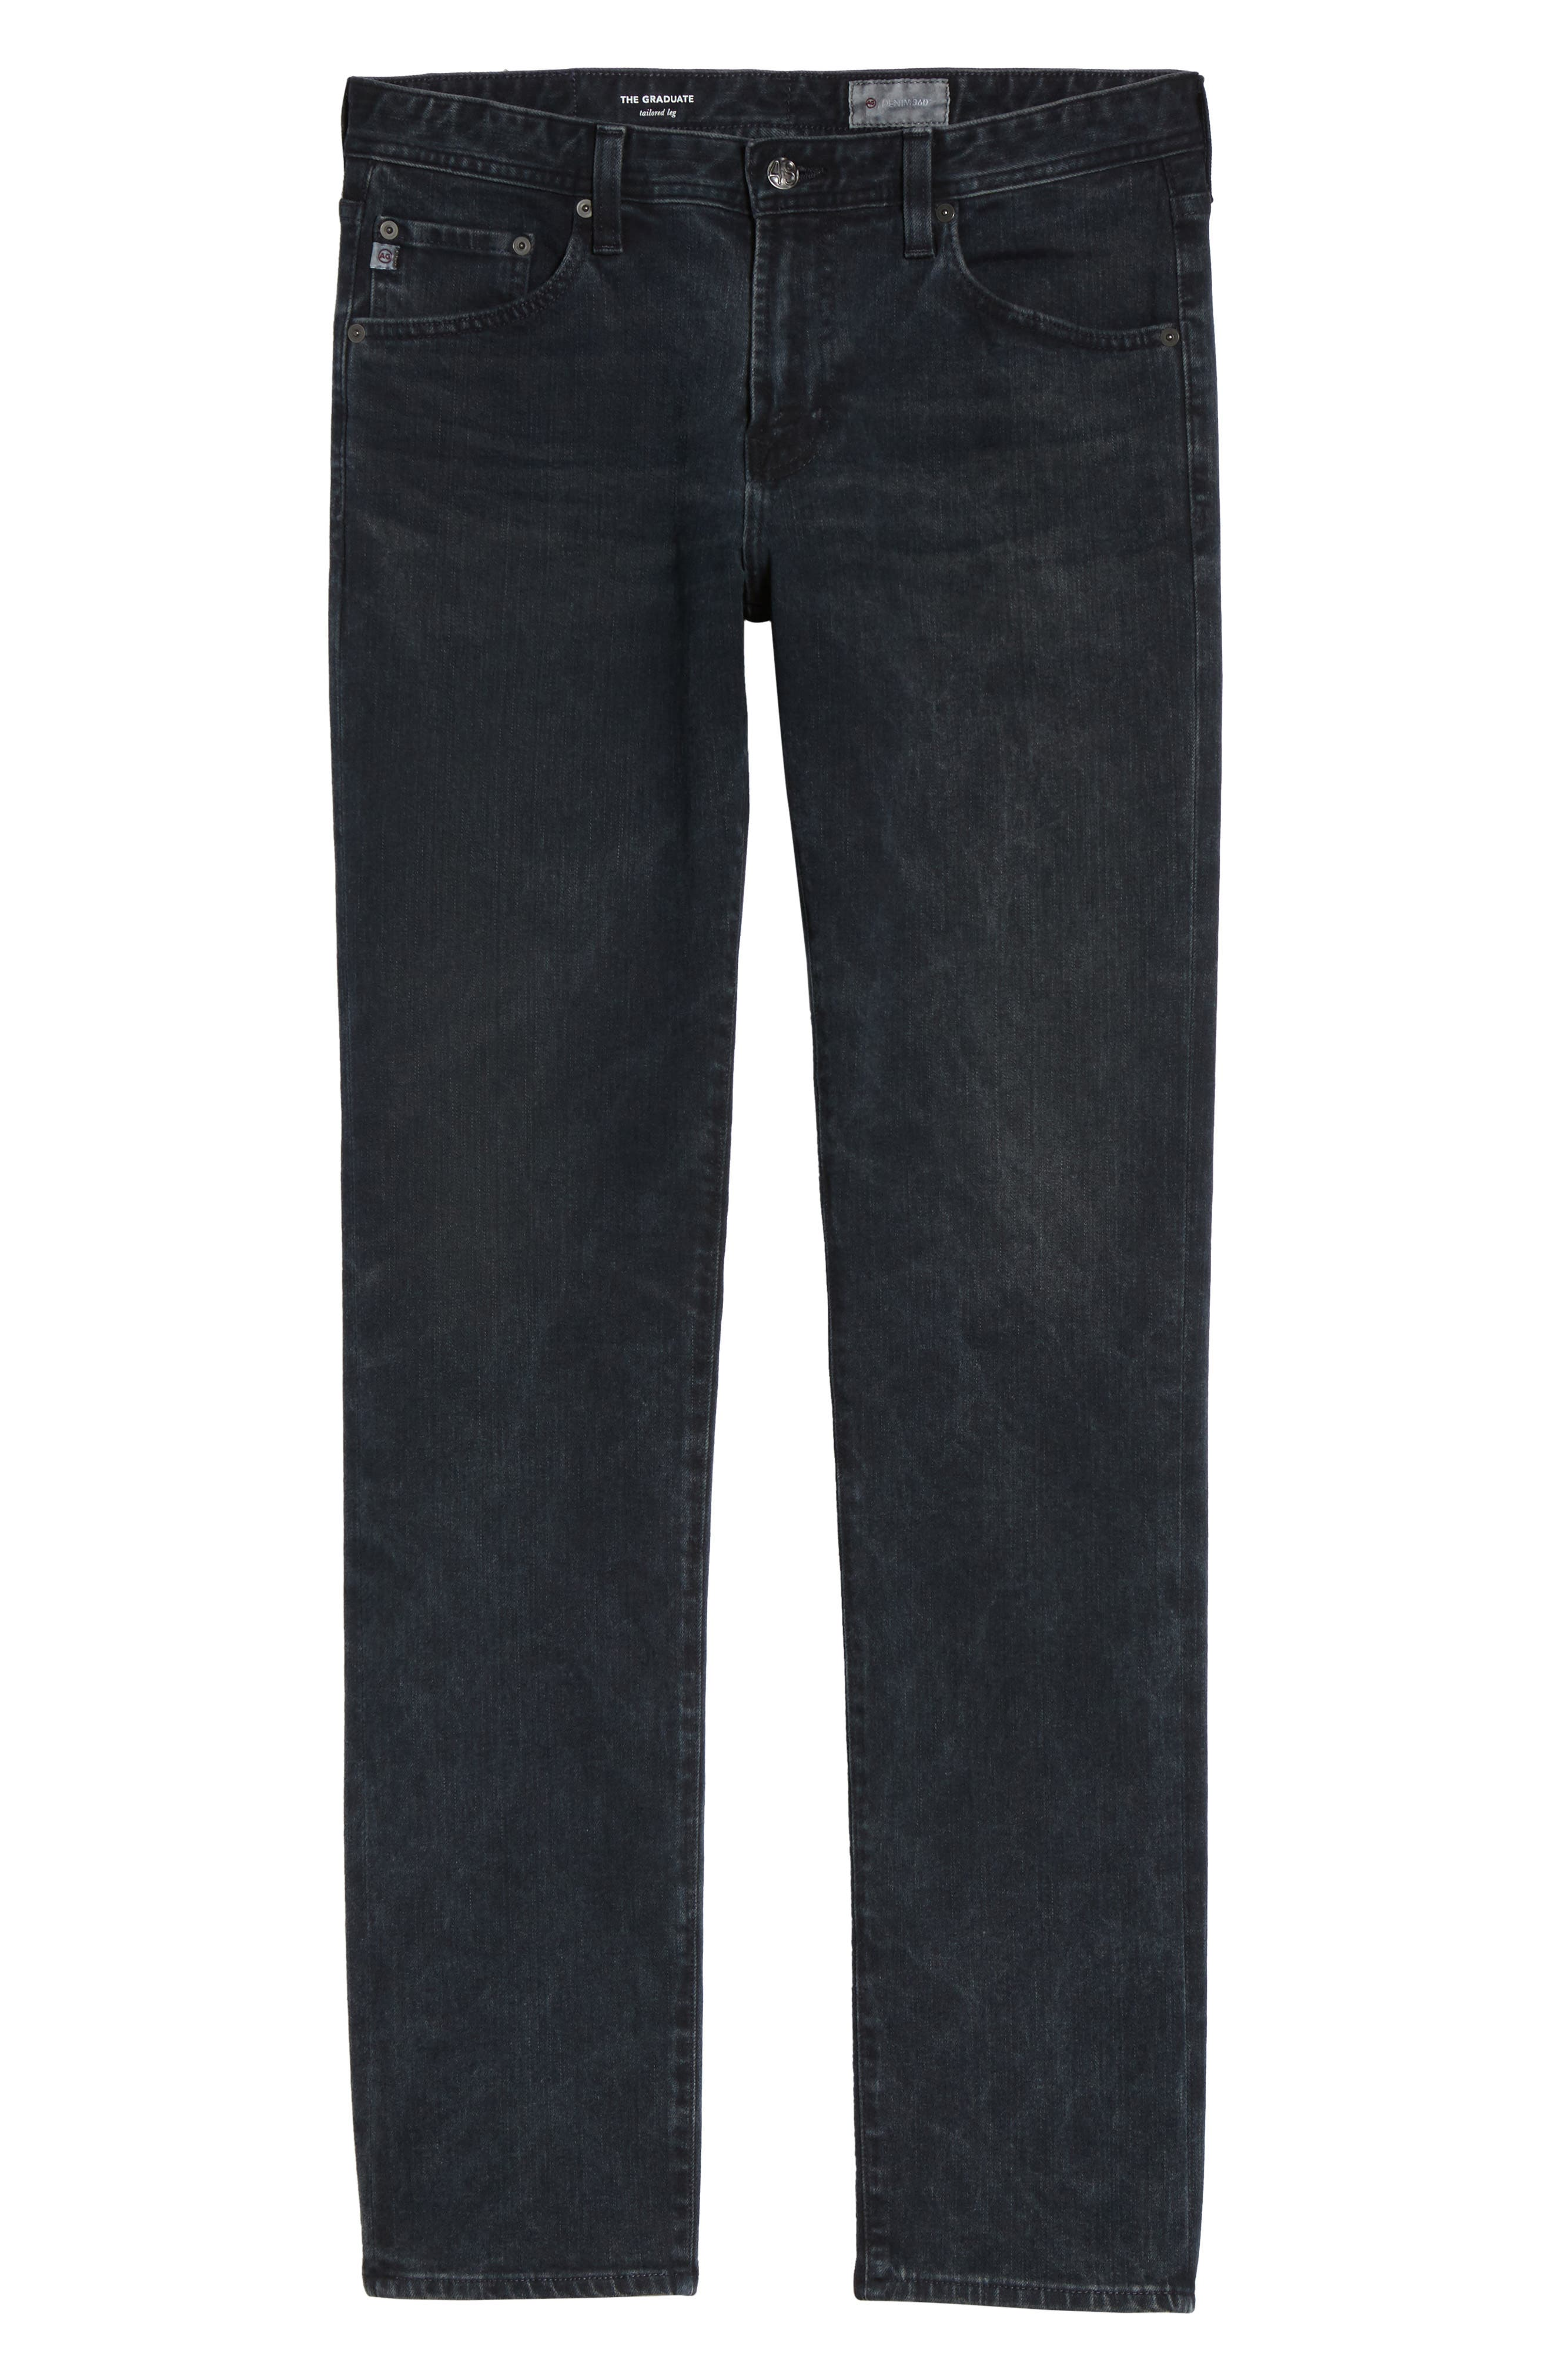 Graduate Slim Straight Leg Jeans,                             Alternate thumbnail 6, color,                             419